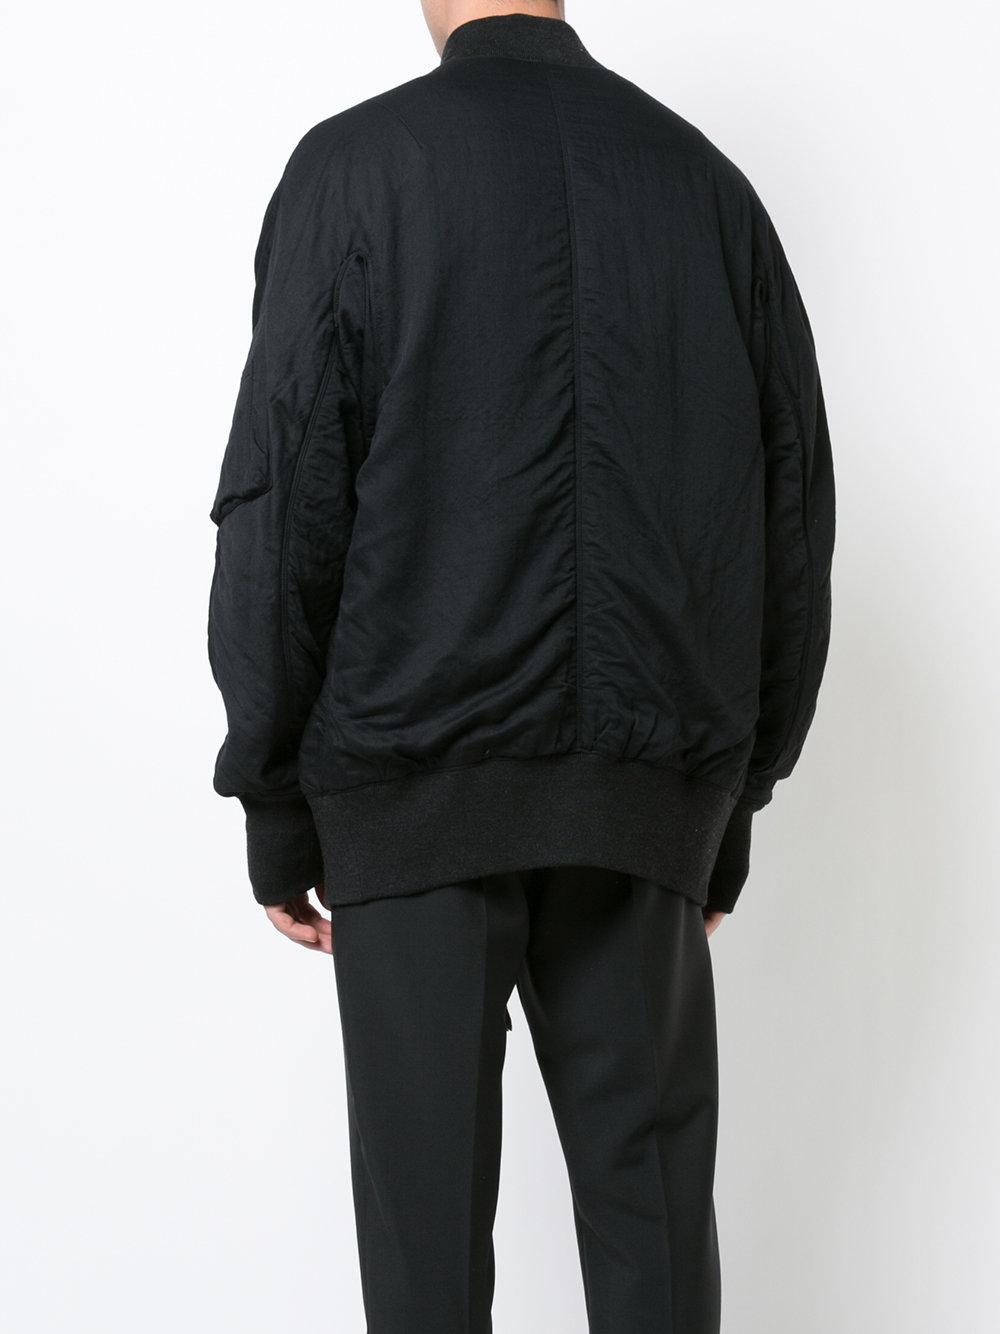 Ziggy Chen Wool Bomber Jacket in Black for Men